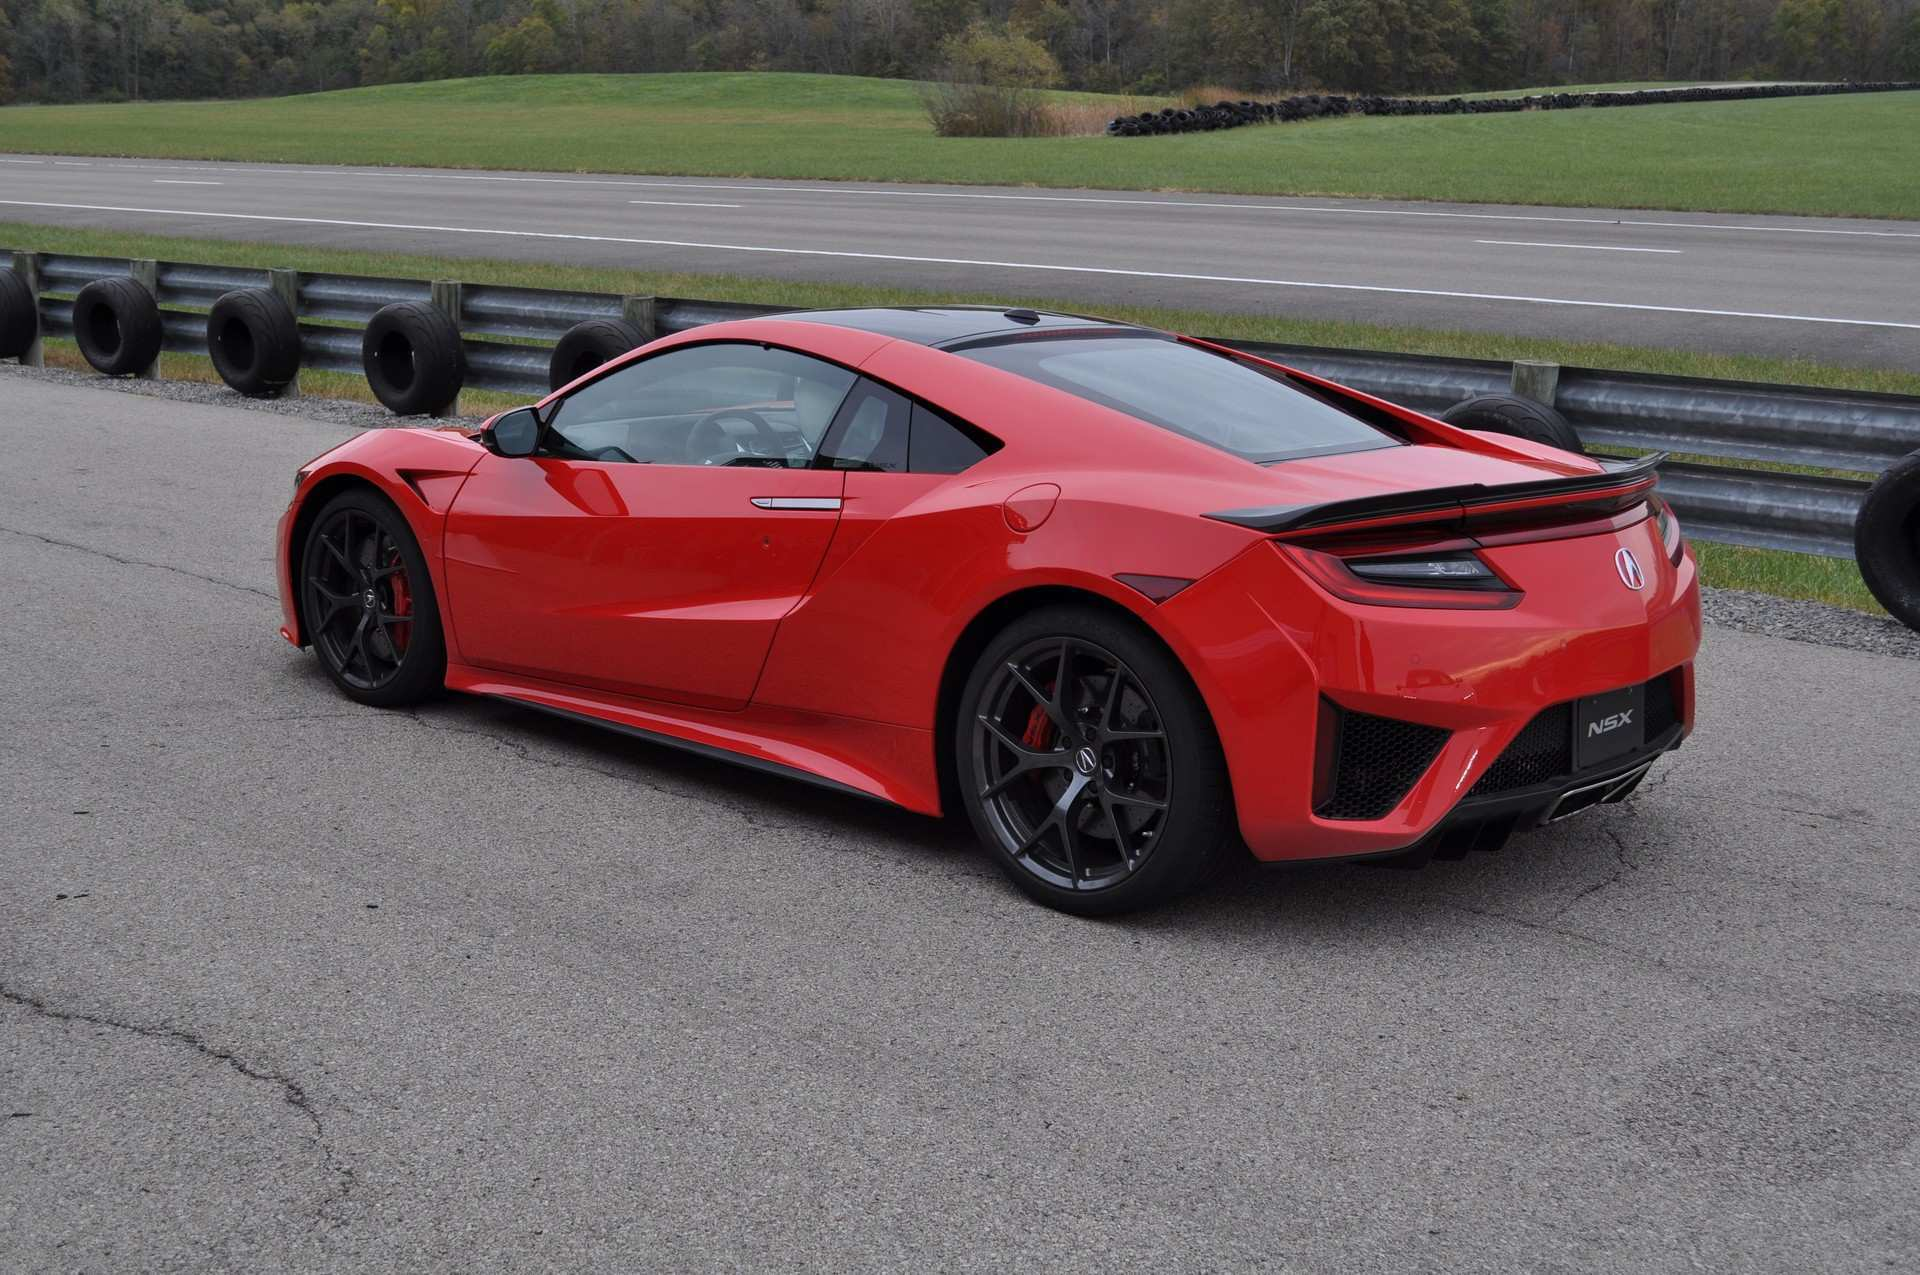 21 Concept of 2019 Acura Nsx Specs by 2019 Acura Nsx